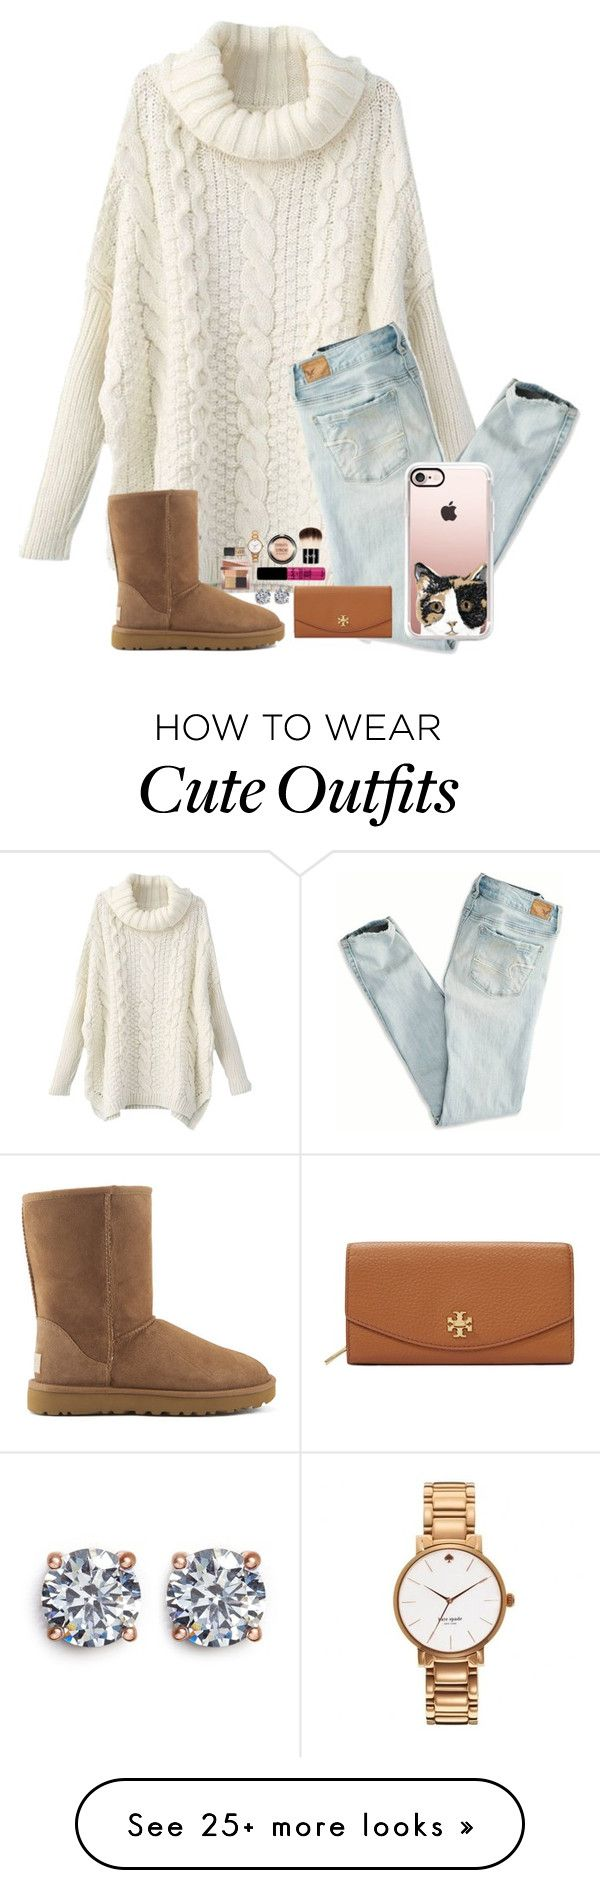 """Cuz its finally appropriate to wear this :)"" by kari-luvs-u-2 on Polyvore featuring American Eagle Outfitters, UGG Australia, Tory Burch, Casetify, NYX, CZ by Kenneth Jay Lane, Bobbi Brown Cosmetics, Kate Spade and NARS Cosmetics"